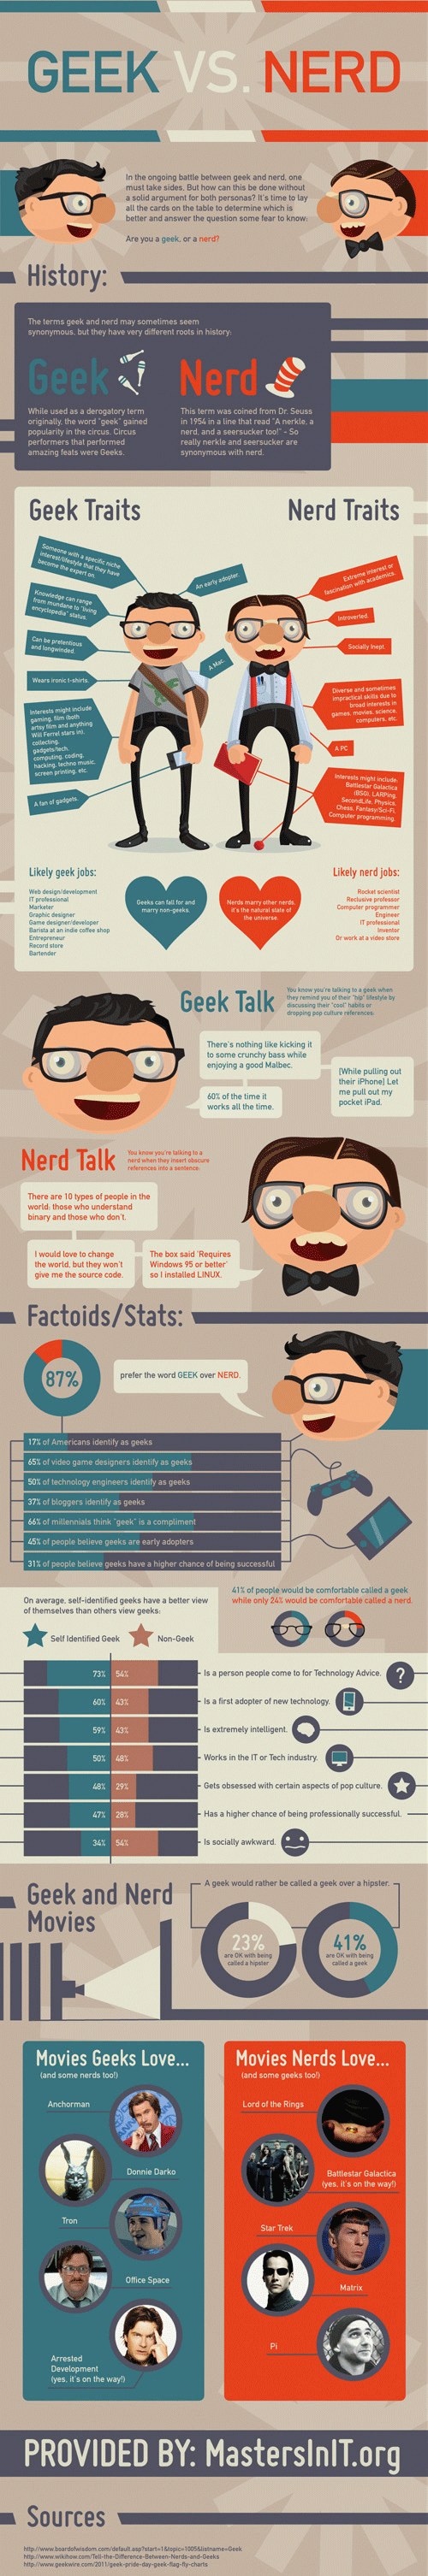 Geek-Vs-Nerd-infographic